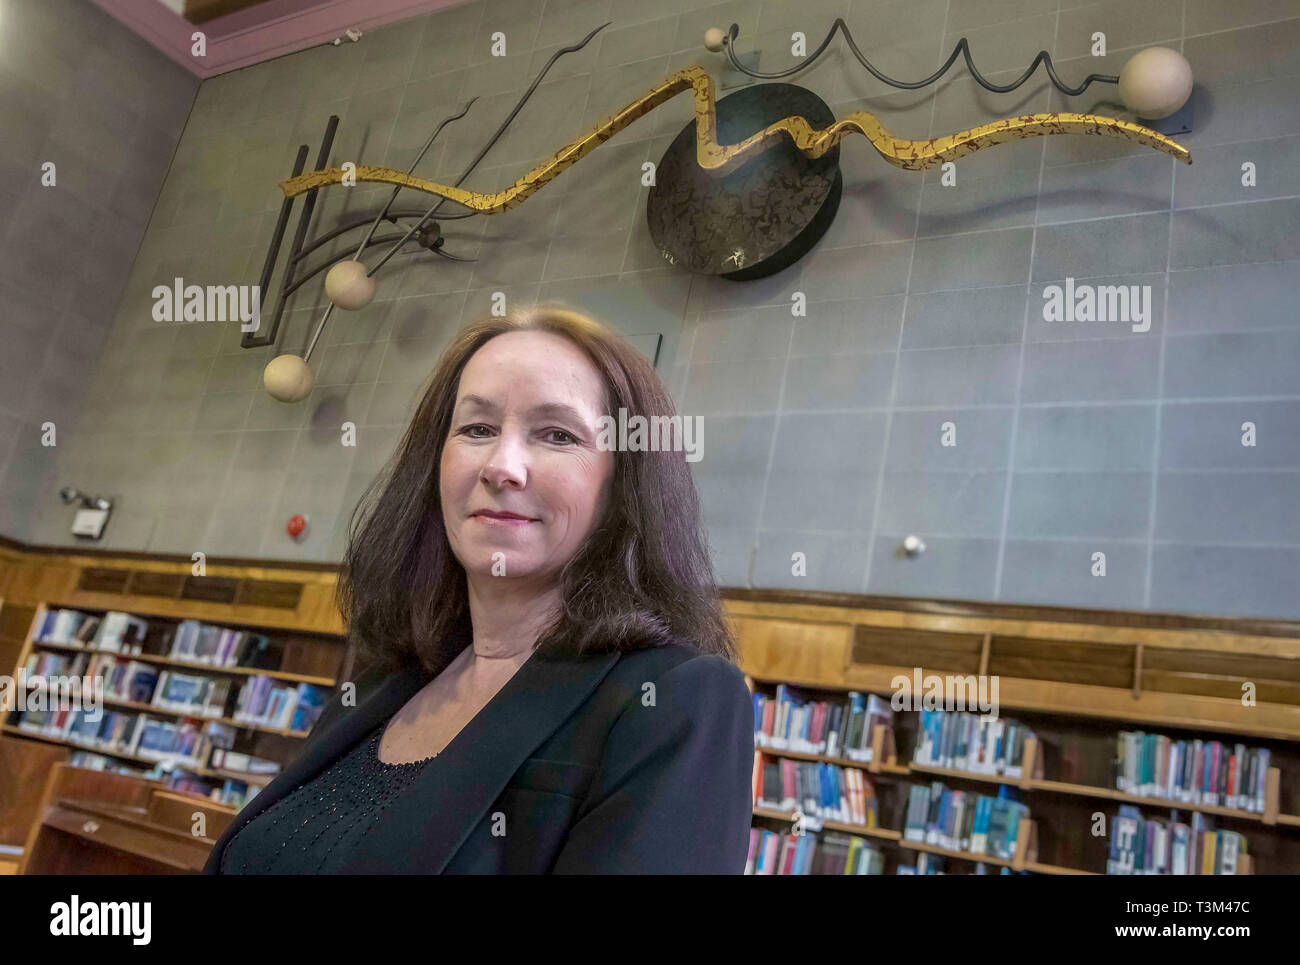 Artwork Adagio at Liverpool University Harold Cohen library. Artist Marianne Forrest seen with Adagio the 30ft kinetic sculpture - Stock Image